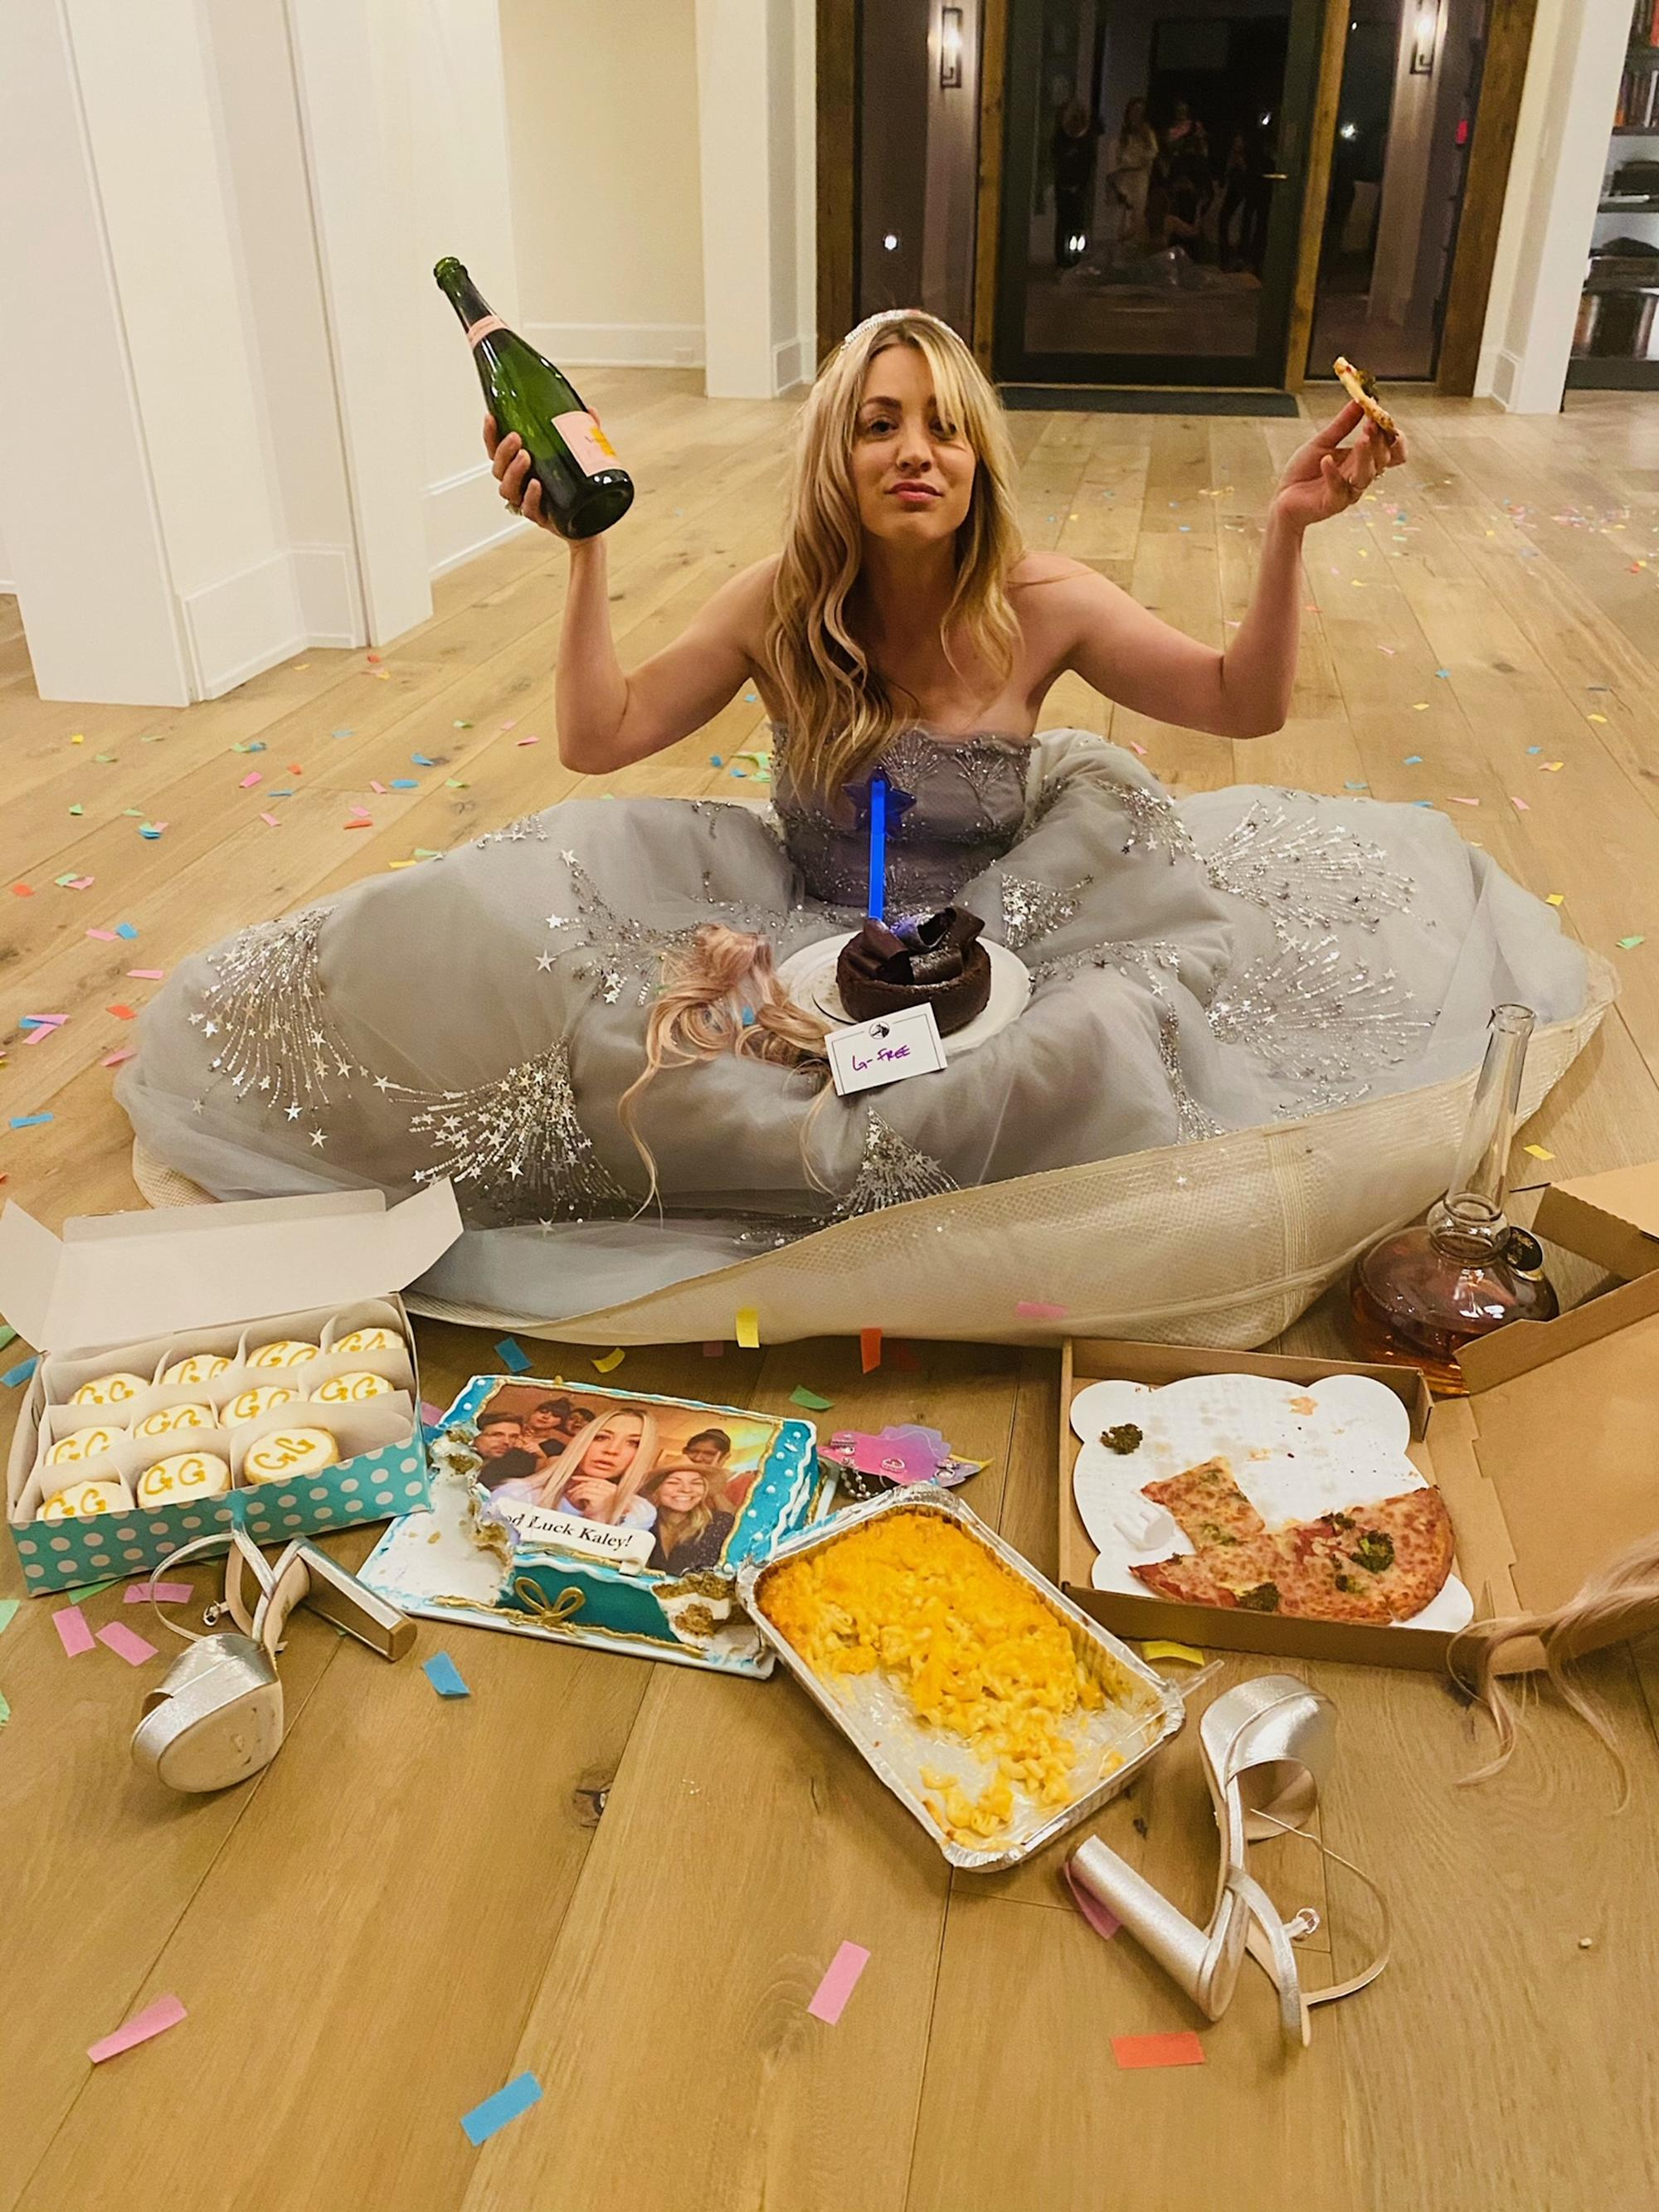 Kaley Cuoco documents her Golden Globes loss with champagne, pizza and so much cake - Yahoo Entertainment